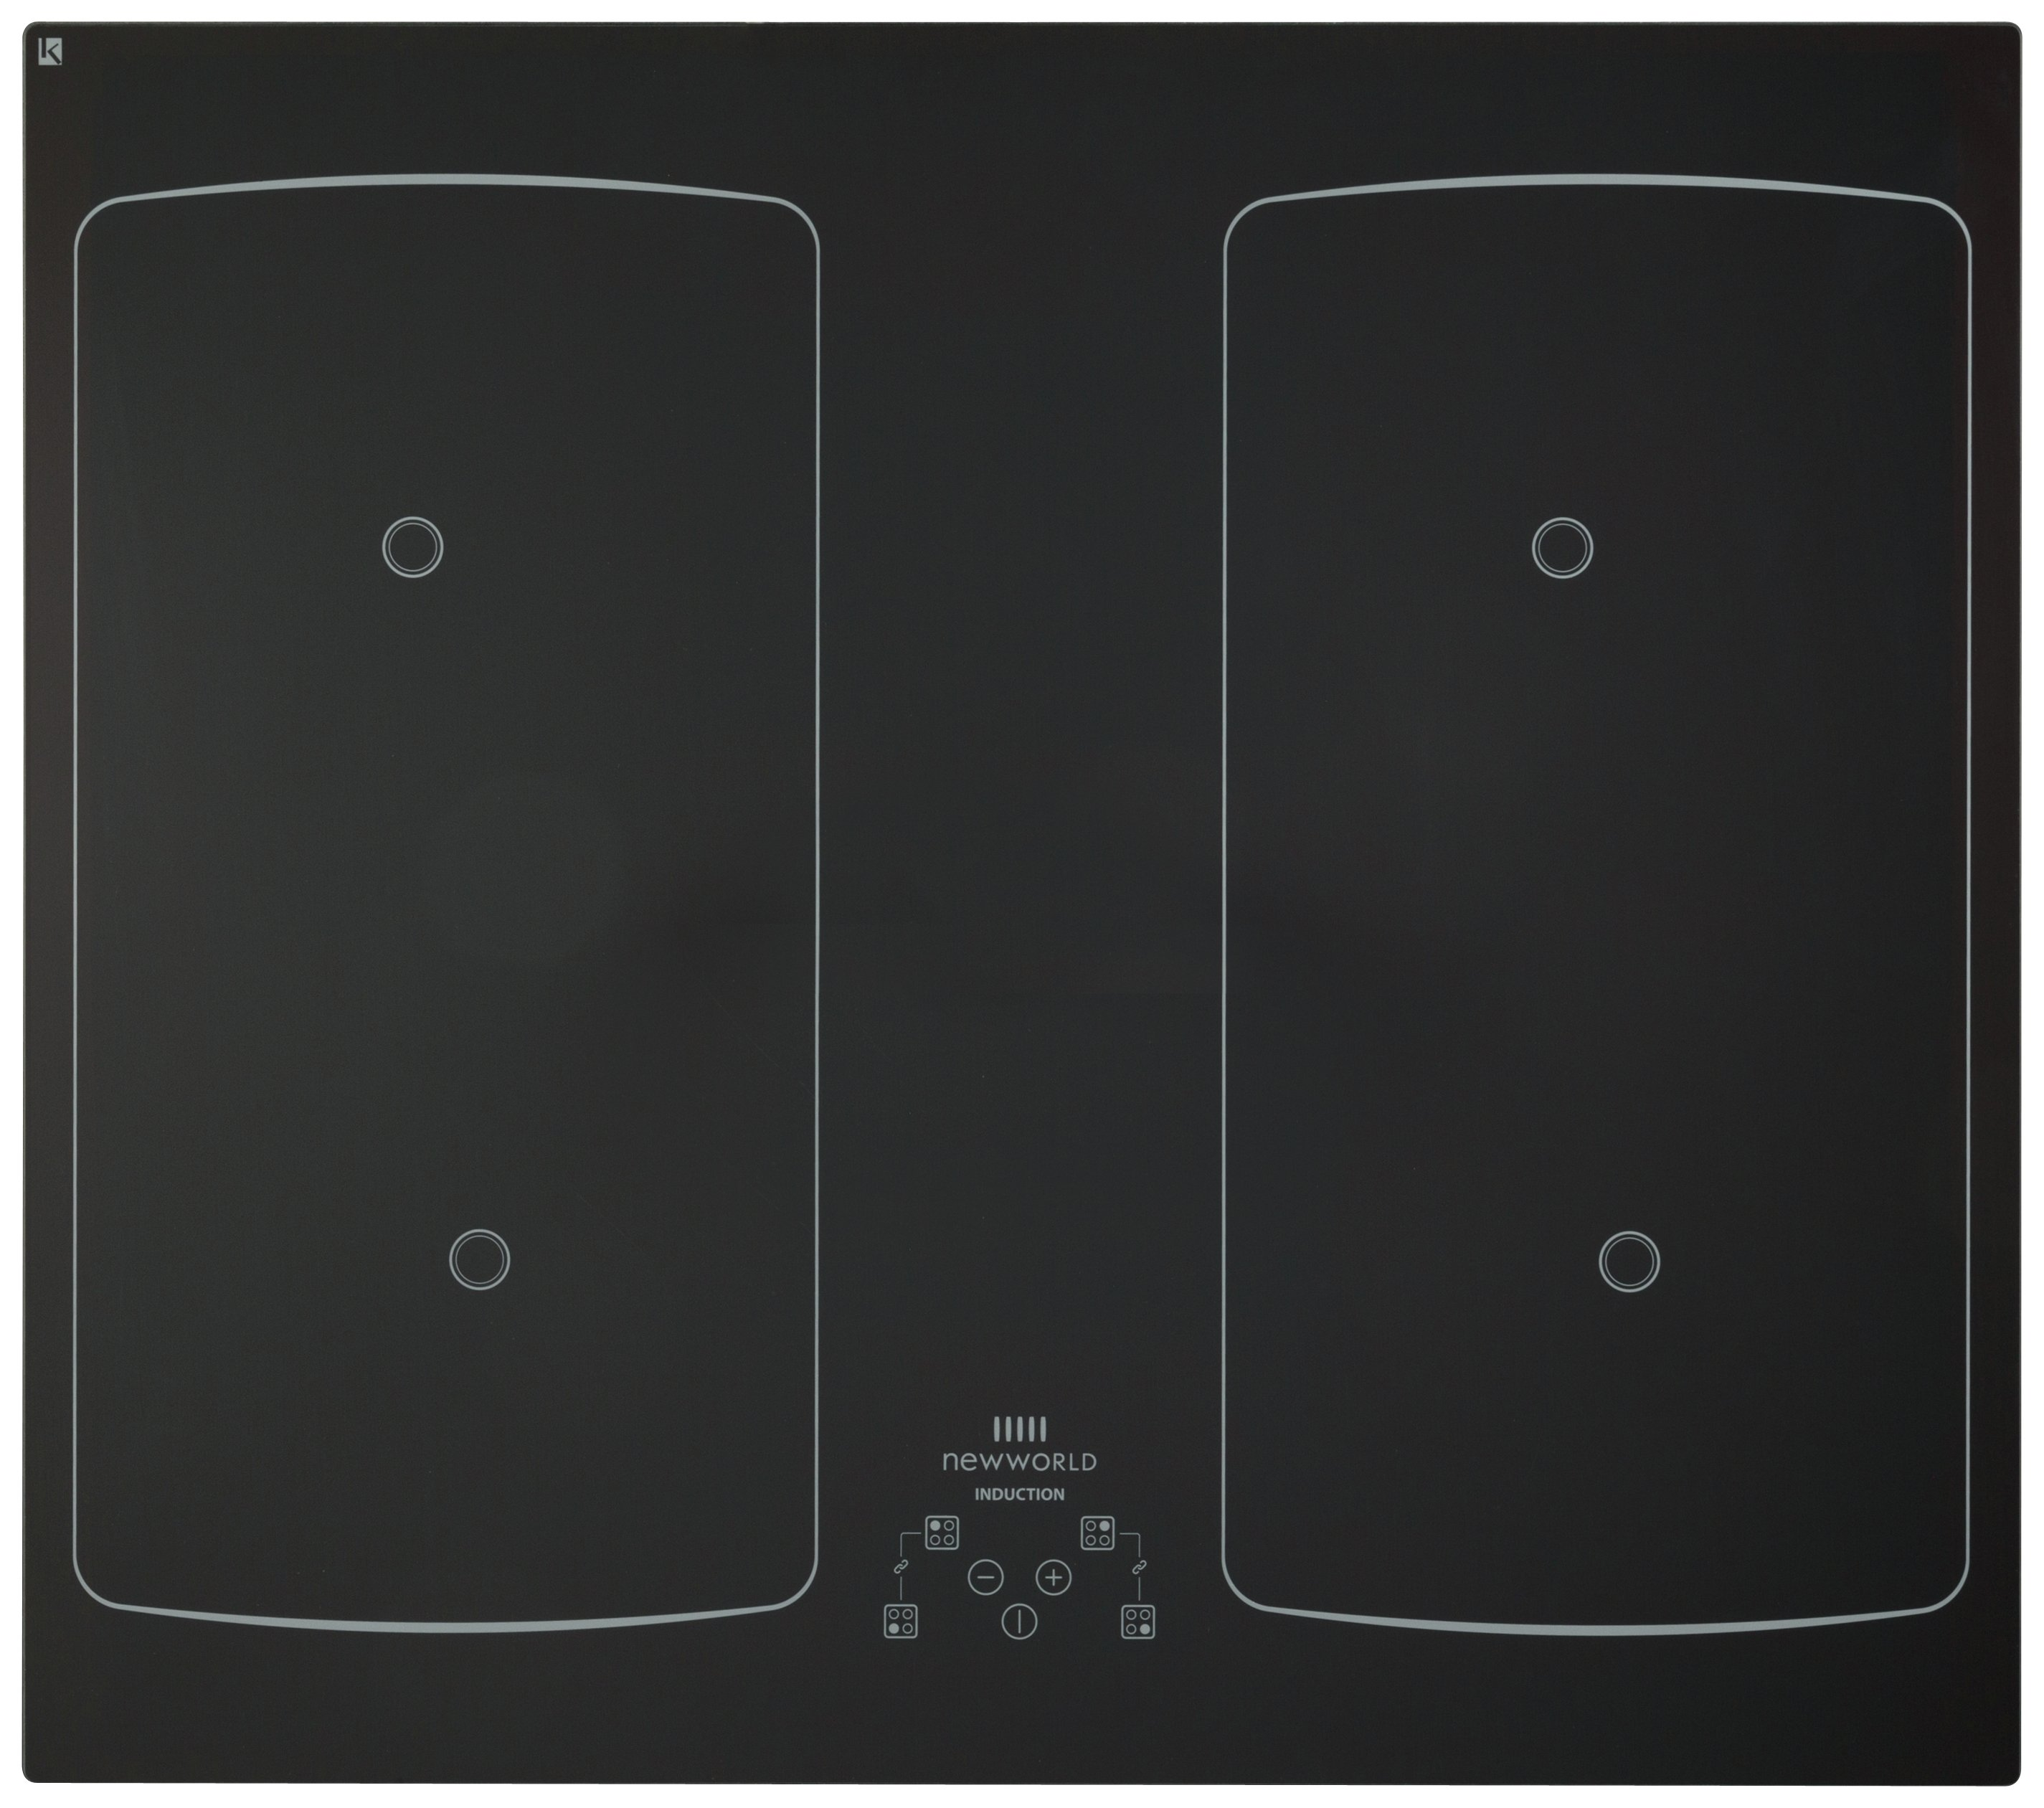 New World NWIHF60T Electric Induction Hob - Black